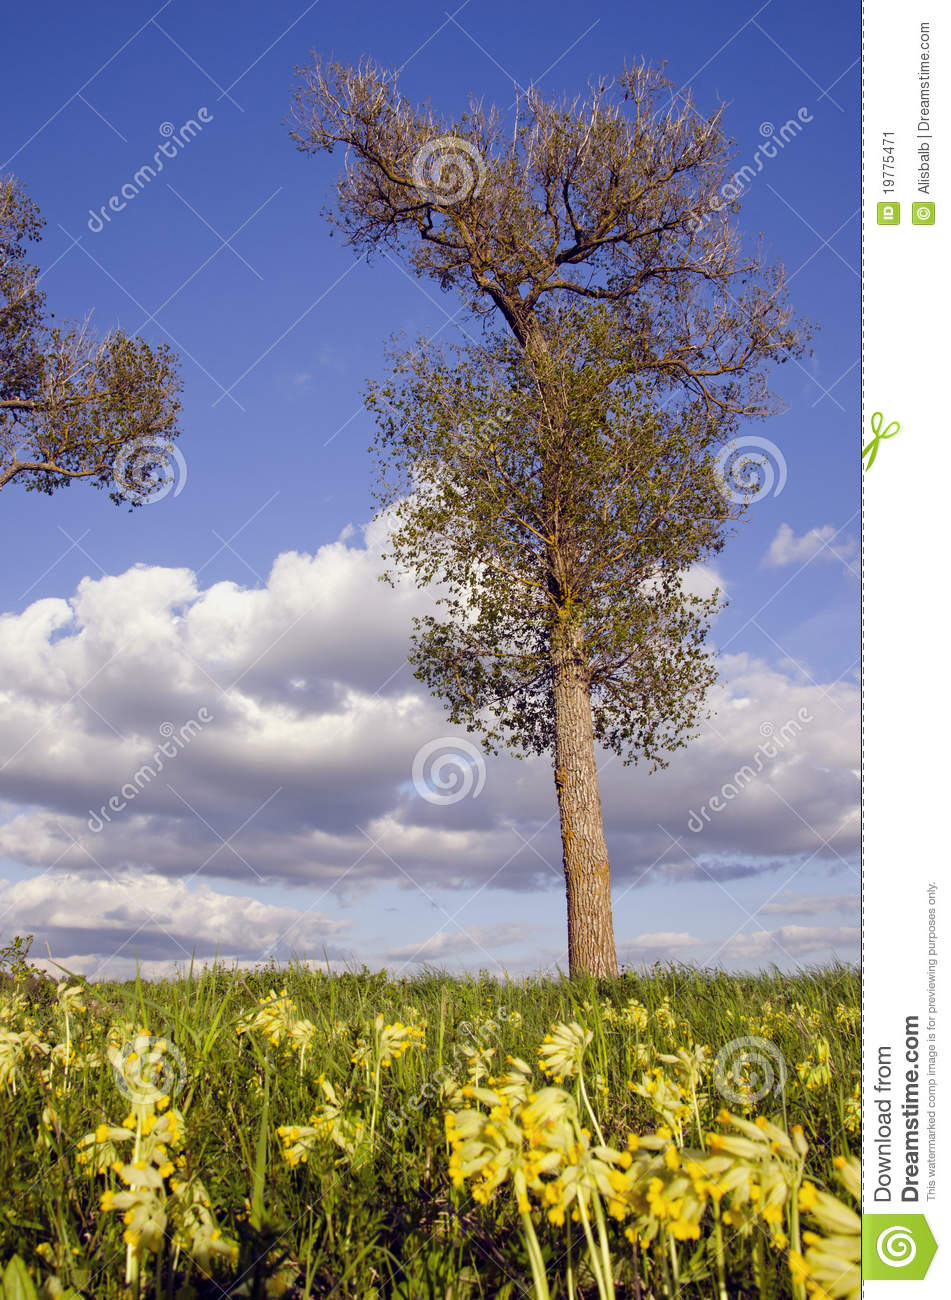 spring trees background - photo #42